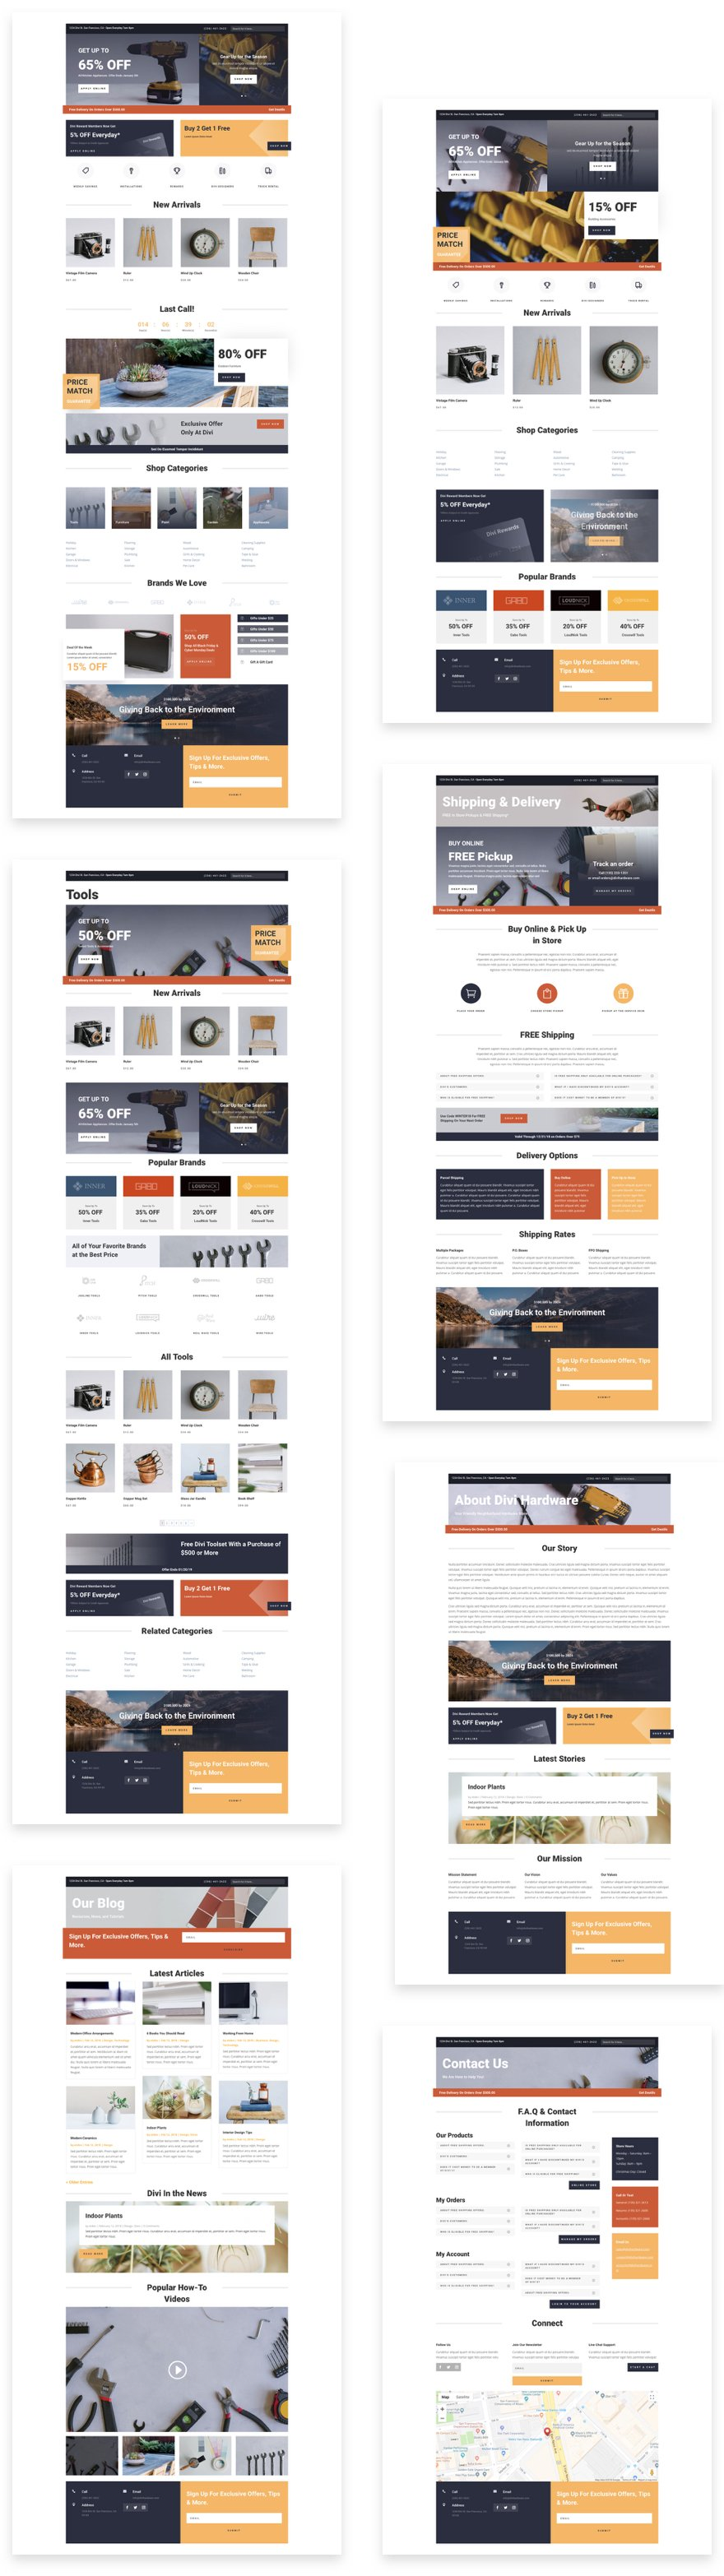 diviwith-border  hardware store layout pack